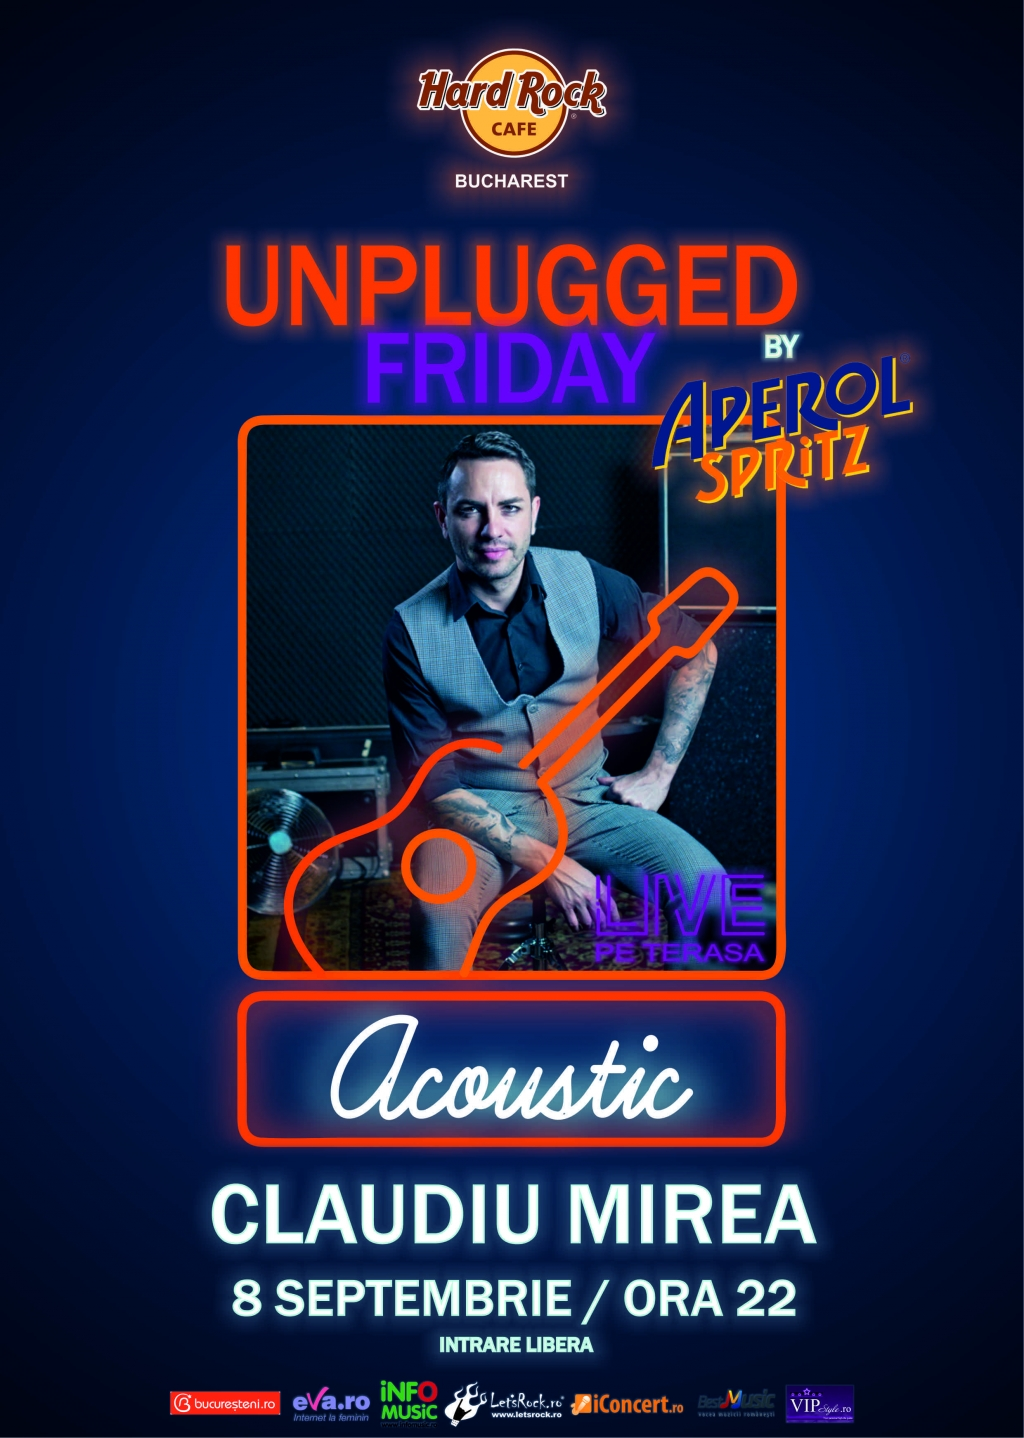 Unplugged Friday cu Claudiu Mirea pe 8 septembrie la Hard Rock Cafe